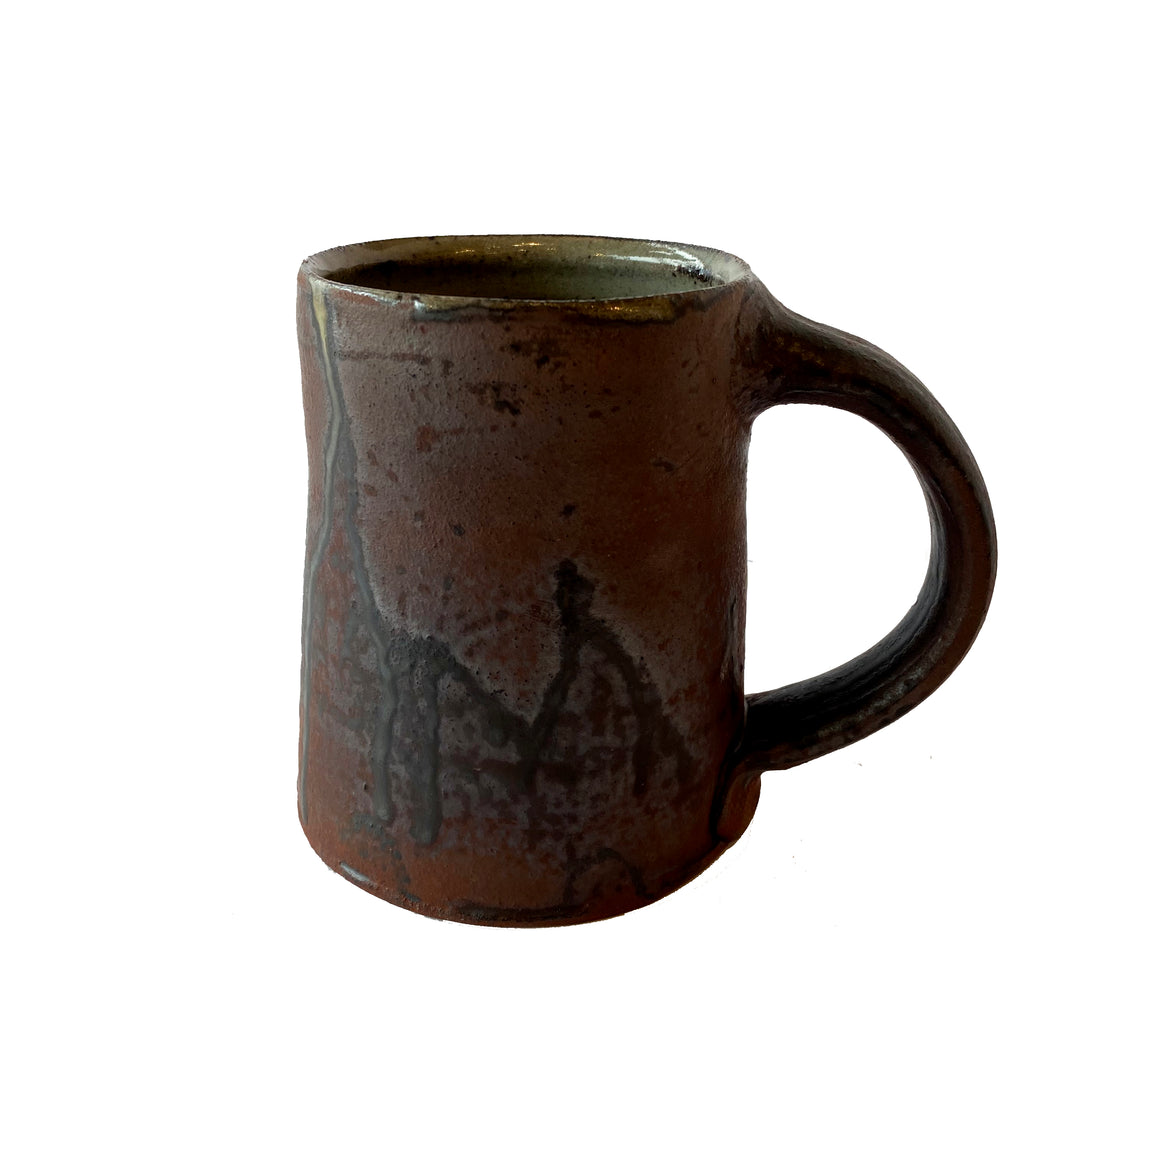 Wood-Fired Tall Mug - Iron